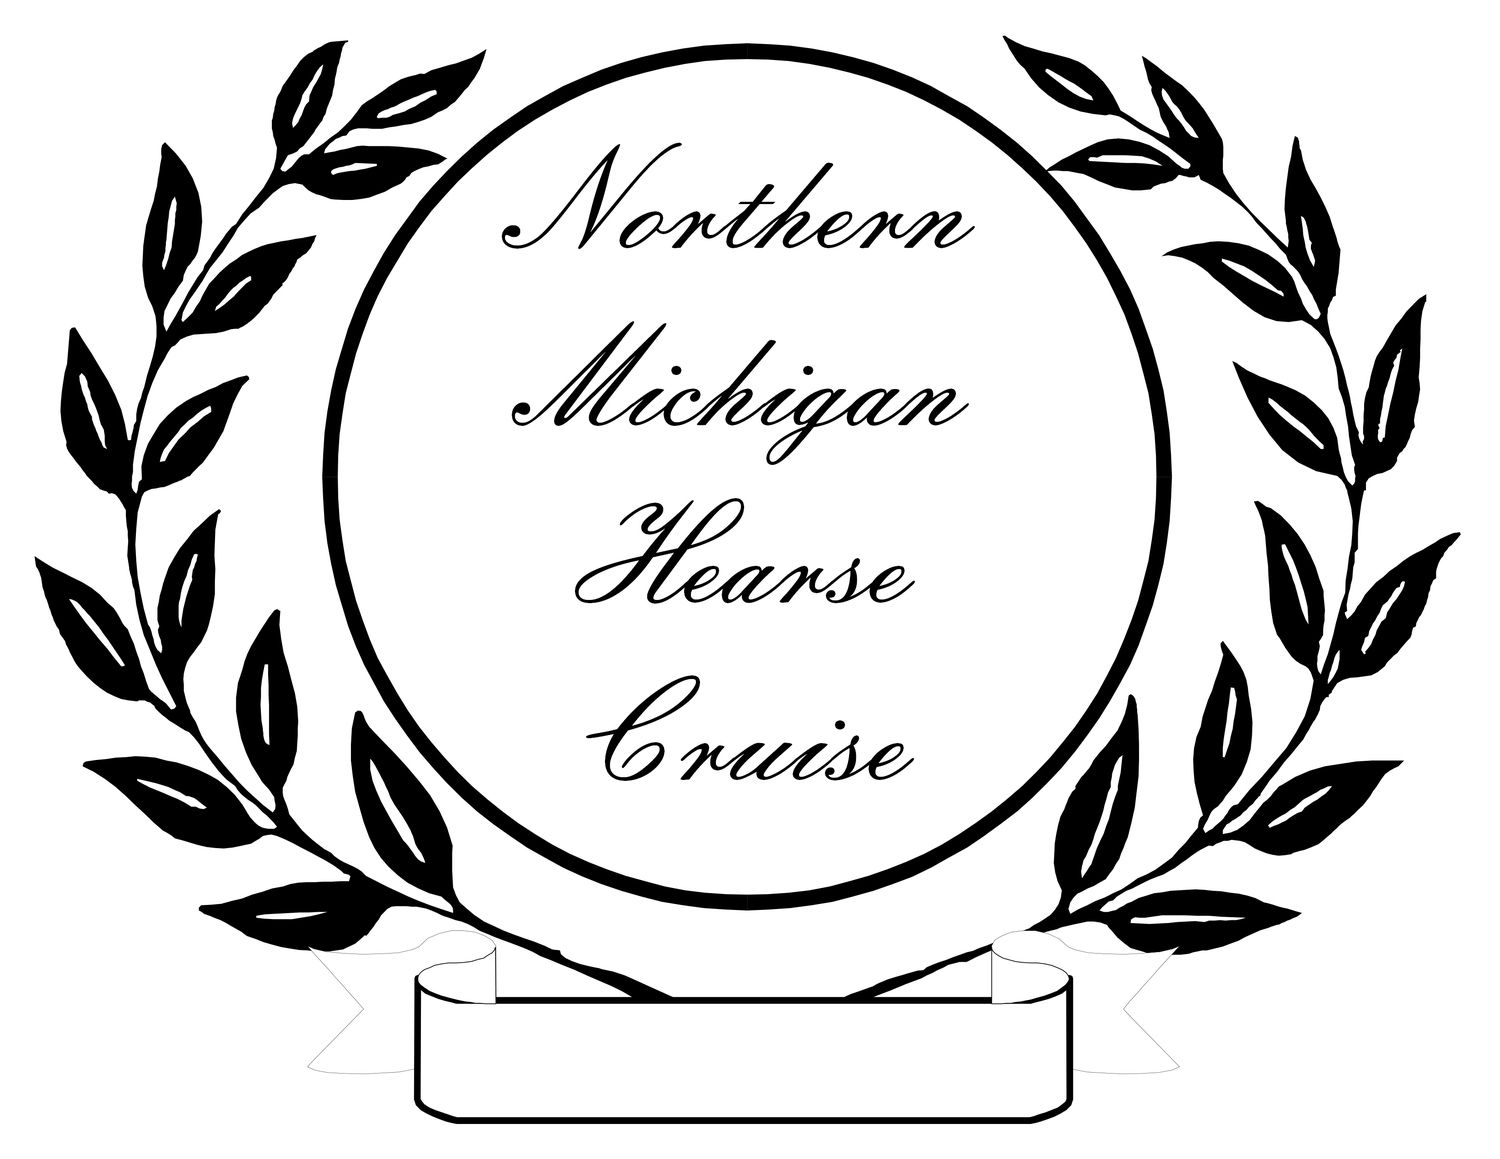 Northern Michigan Hearse Cruise